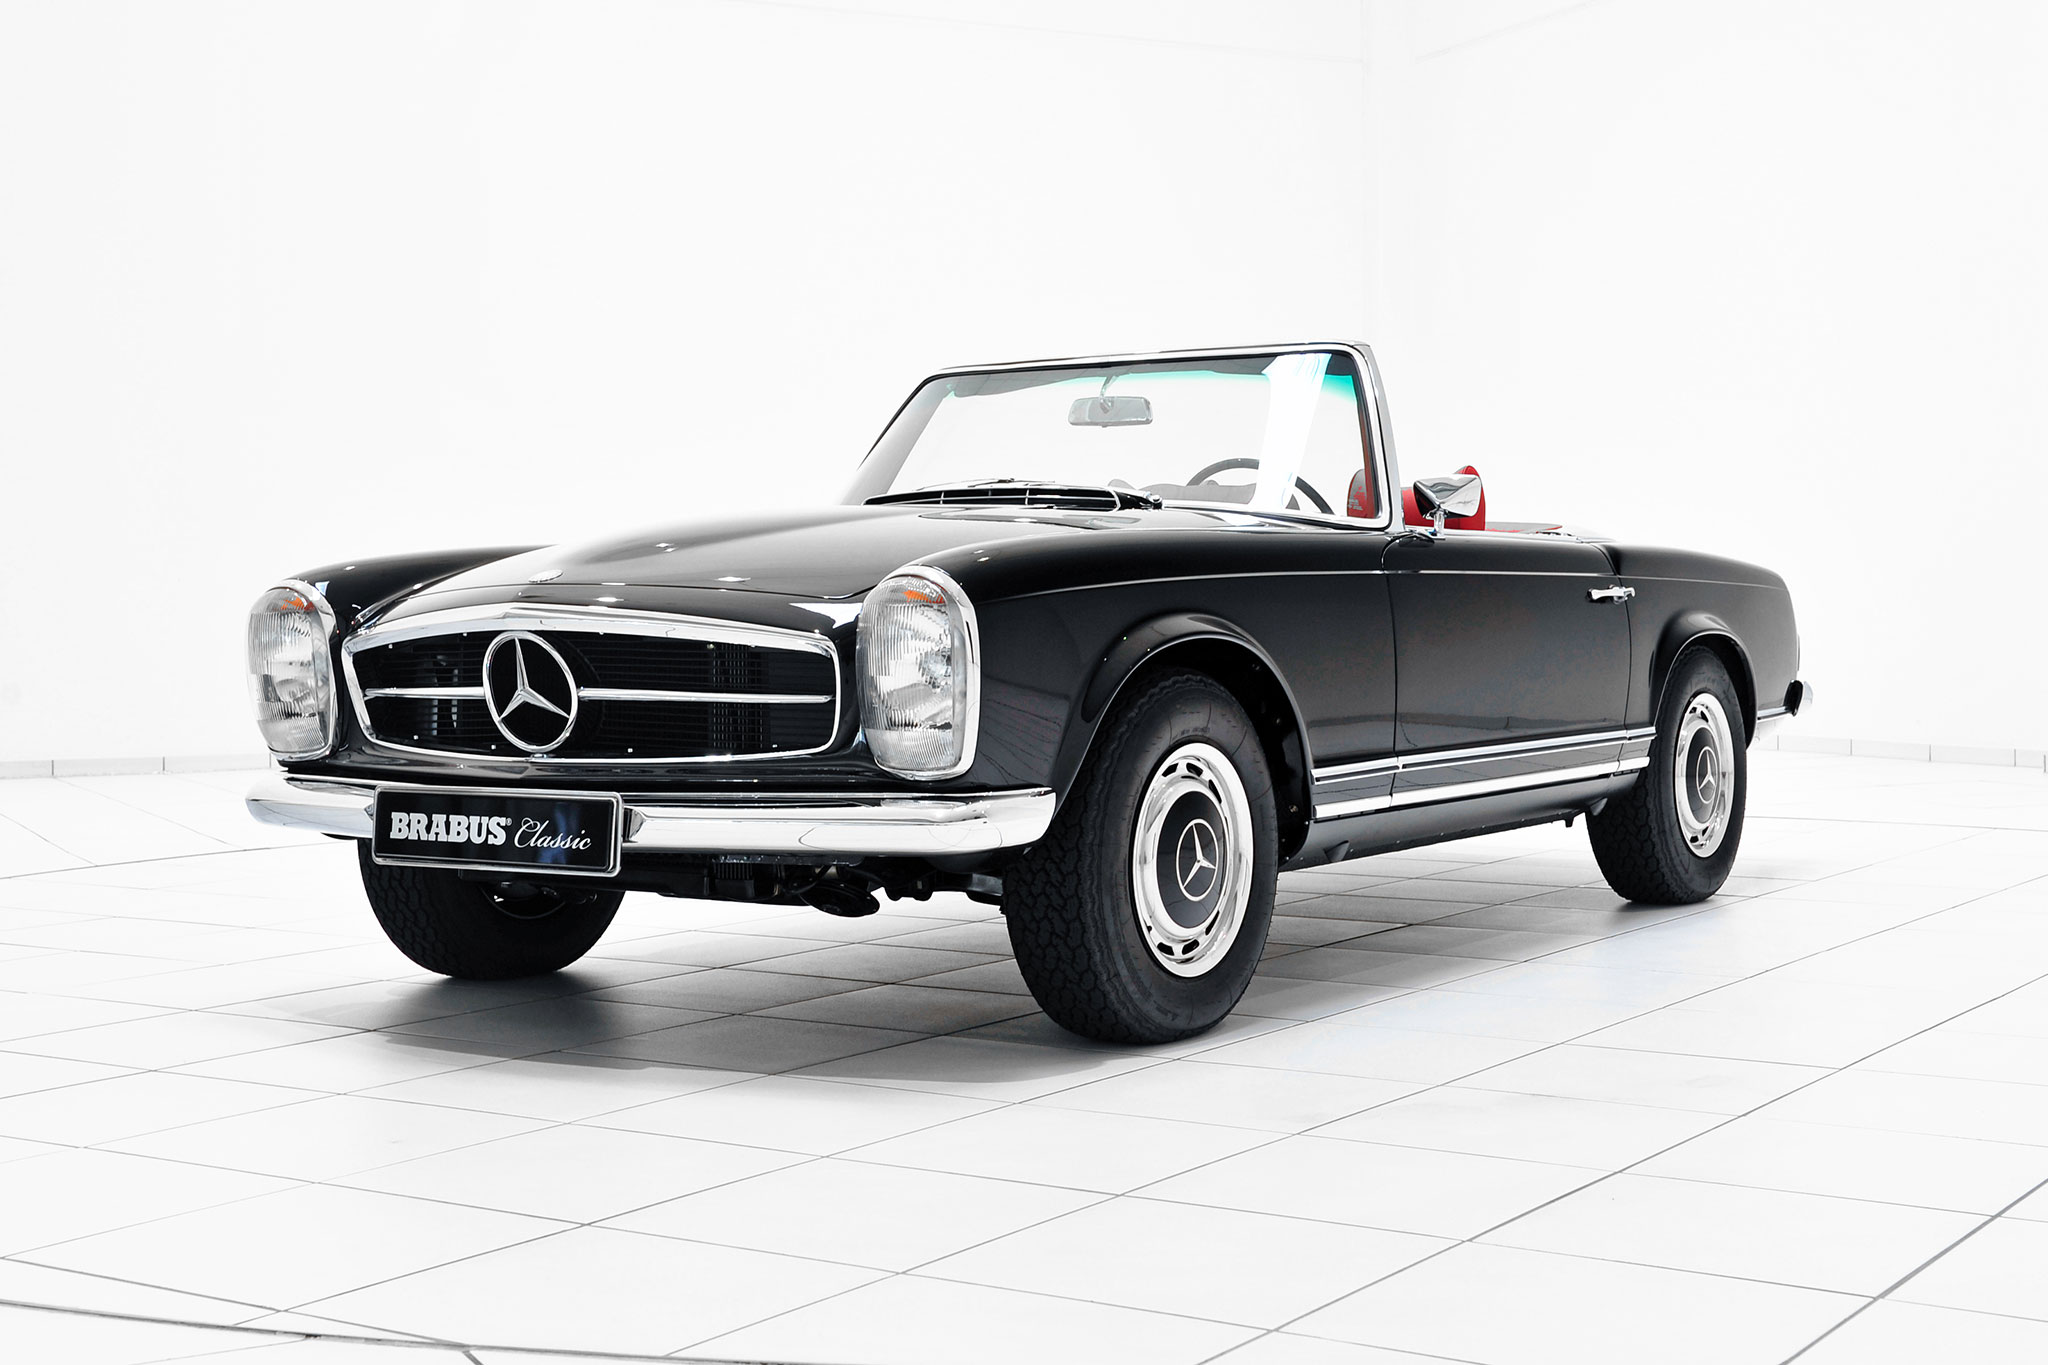 Brabus Promotes Classic Services With Restored Mercedes